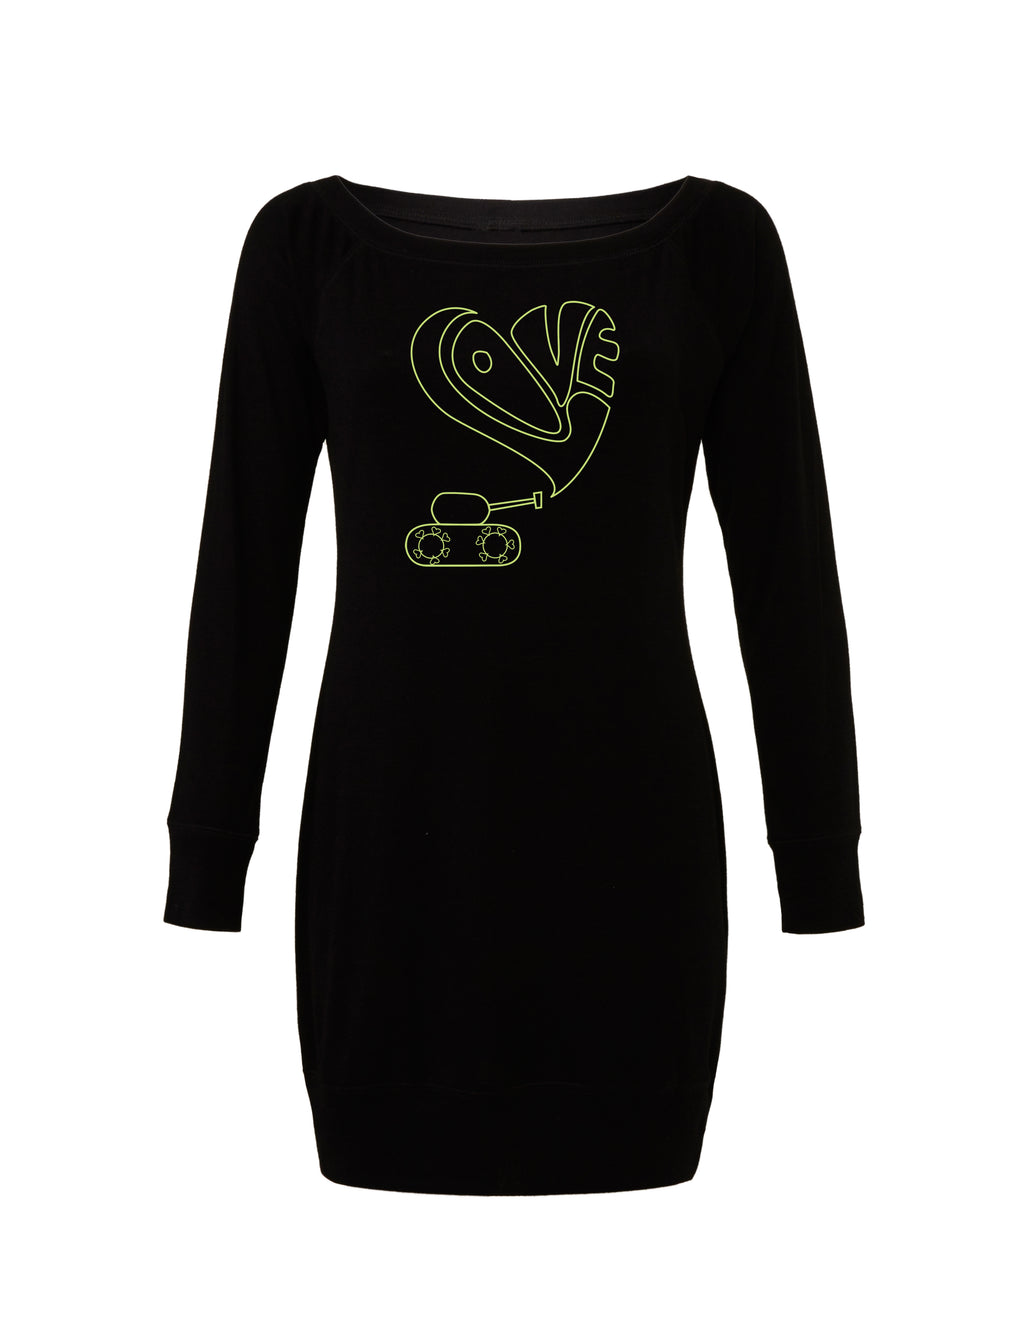 Black Lightweight Sweater Dress with green love tank graphic for 55.00 at ARMY PINK